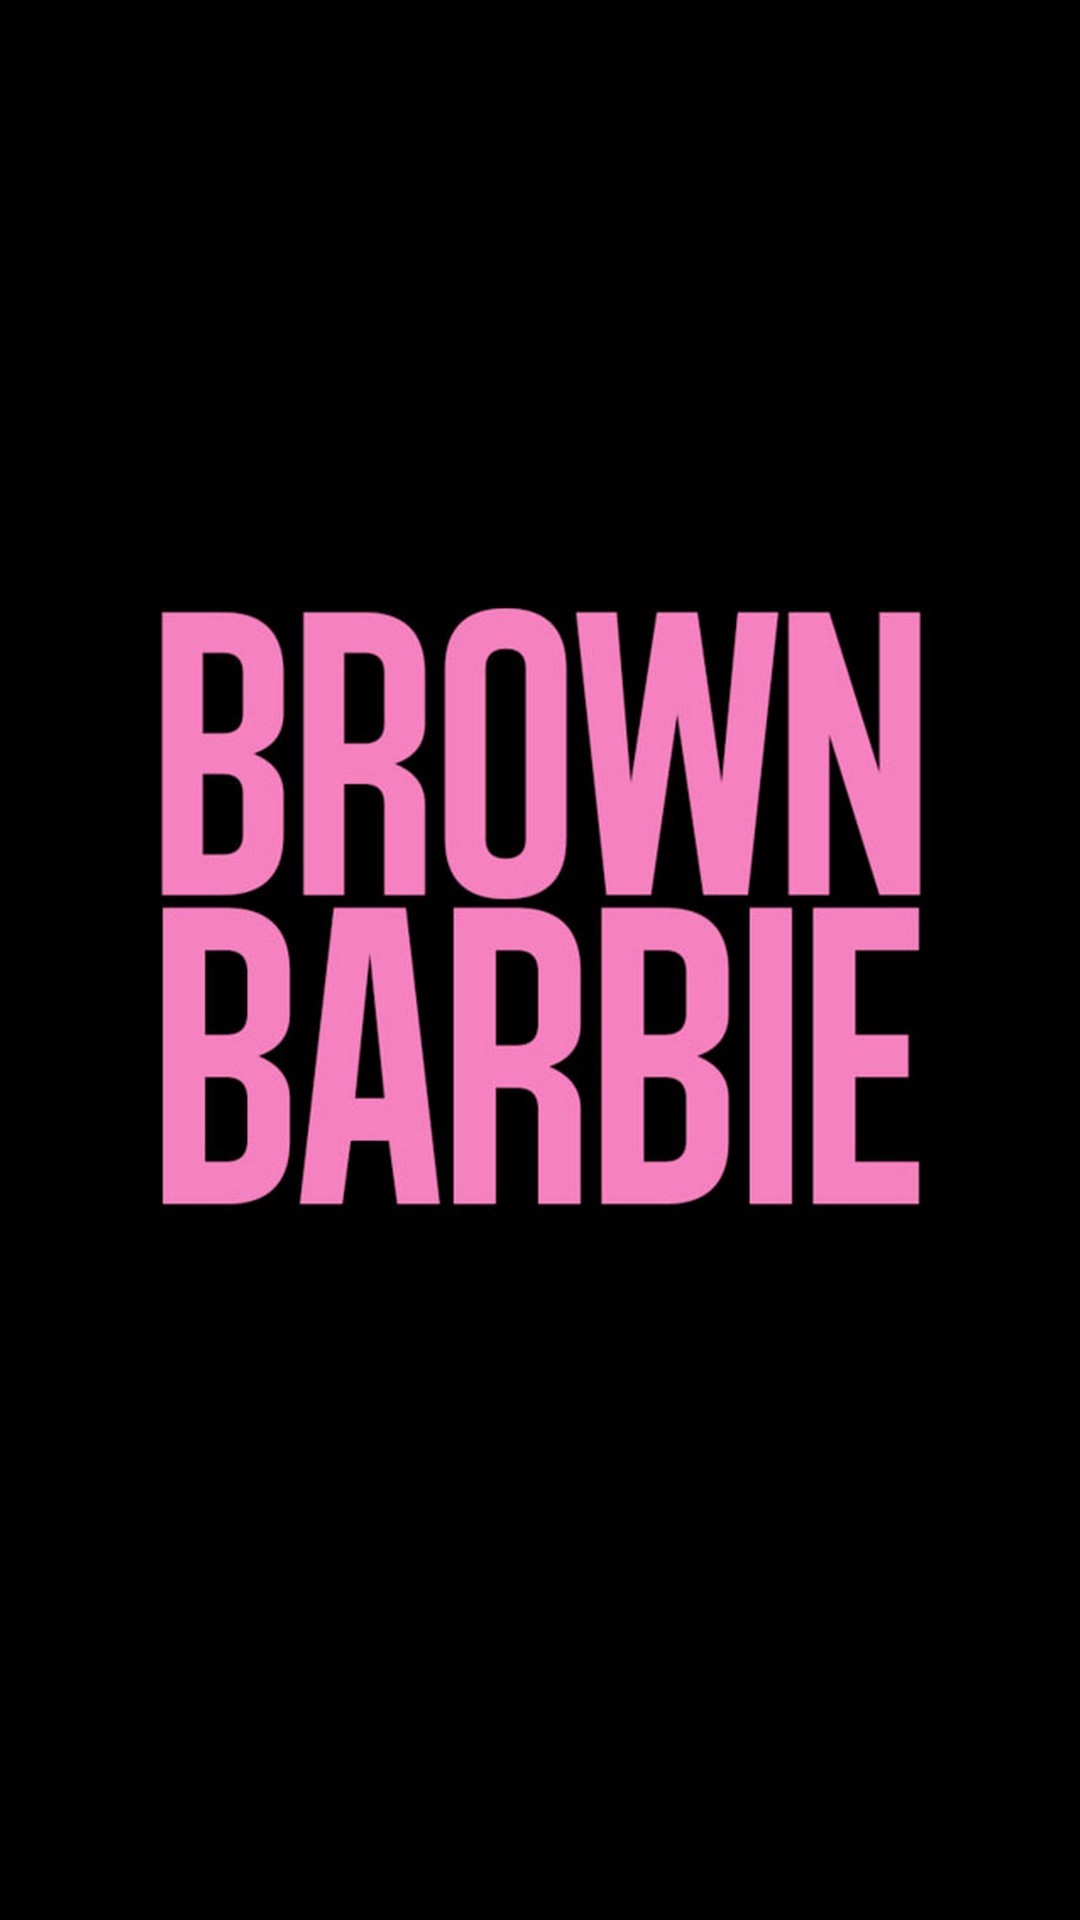 Cute Girly Wallpapers For Iphone Brown Barbie